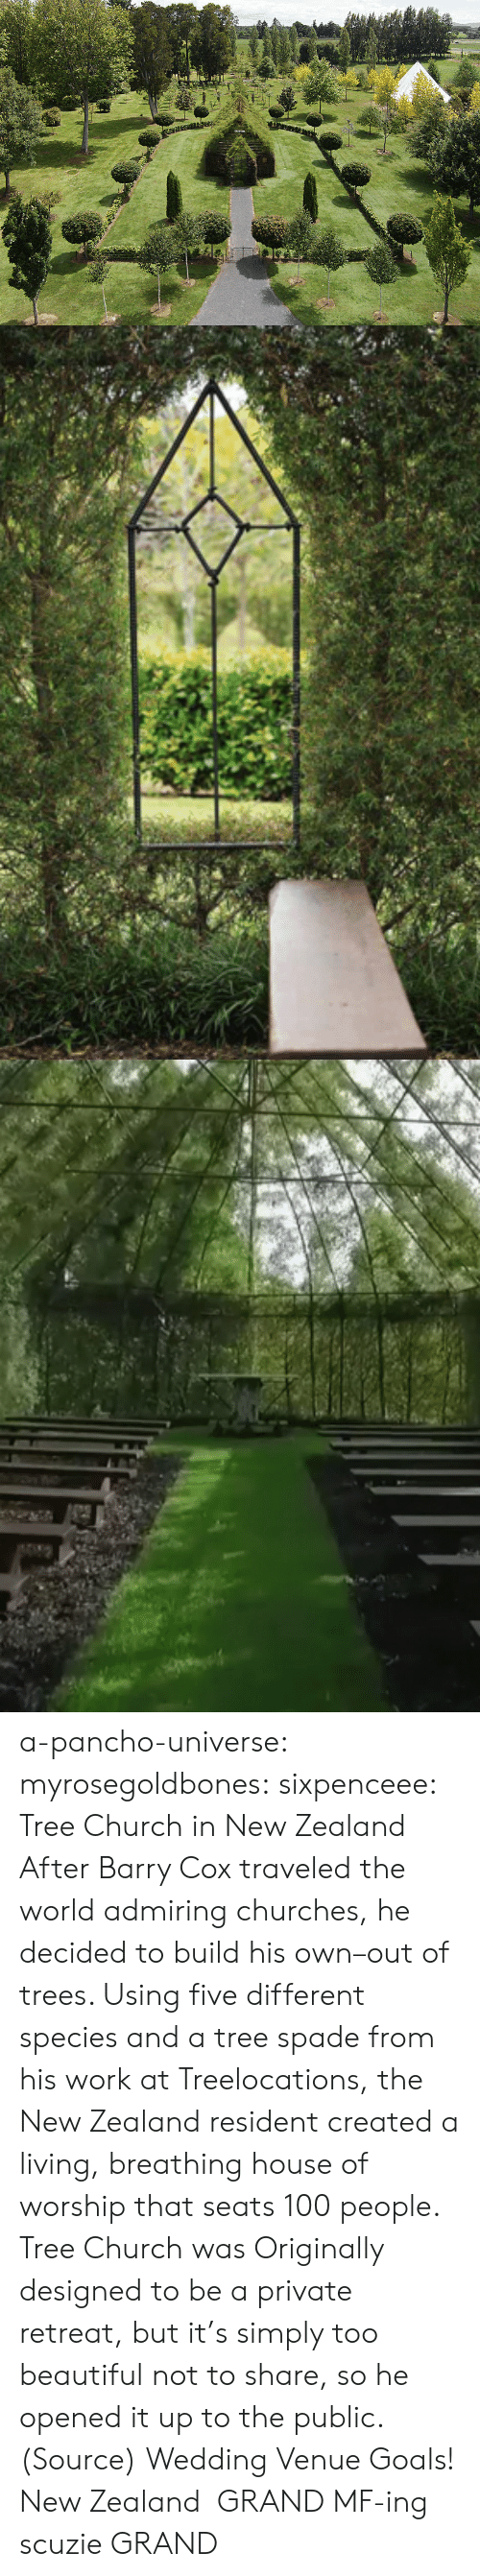 Anaconda, Beautiful, and Church: a-pancho-universe:  myrosegoldbones: sixpenceee:  Tree Church in New Zealand After Barry Cox traveled the world admiring churches, he decided to build his own–out of trees. Using five different species and a tree spade from his work at Treelocations, the New Zealand resident created a living, breathing house of worship that seats 100 people. Tree Church was Originally designed to be a private retreat, but it's simply too beautiful not to share, so he opened it up to the public. (Source)  Wedding Venue Goals!  New Zealand GRAND MF-ing scuzie GRAND